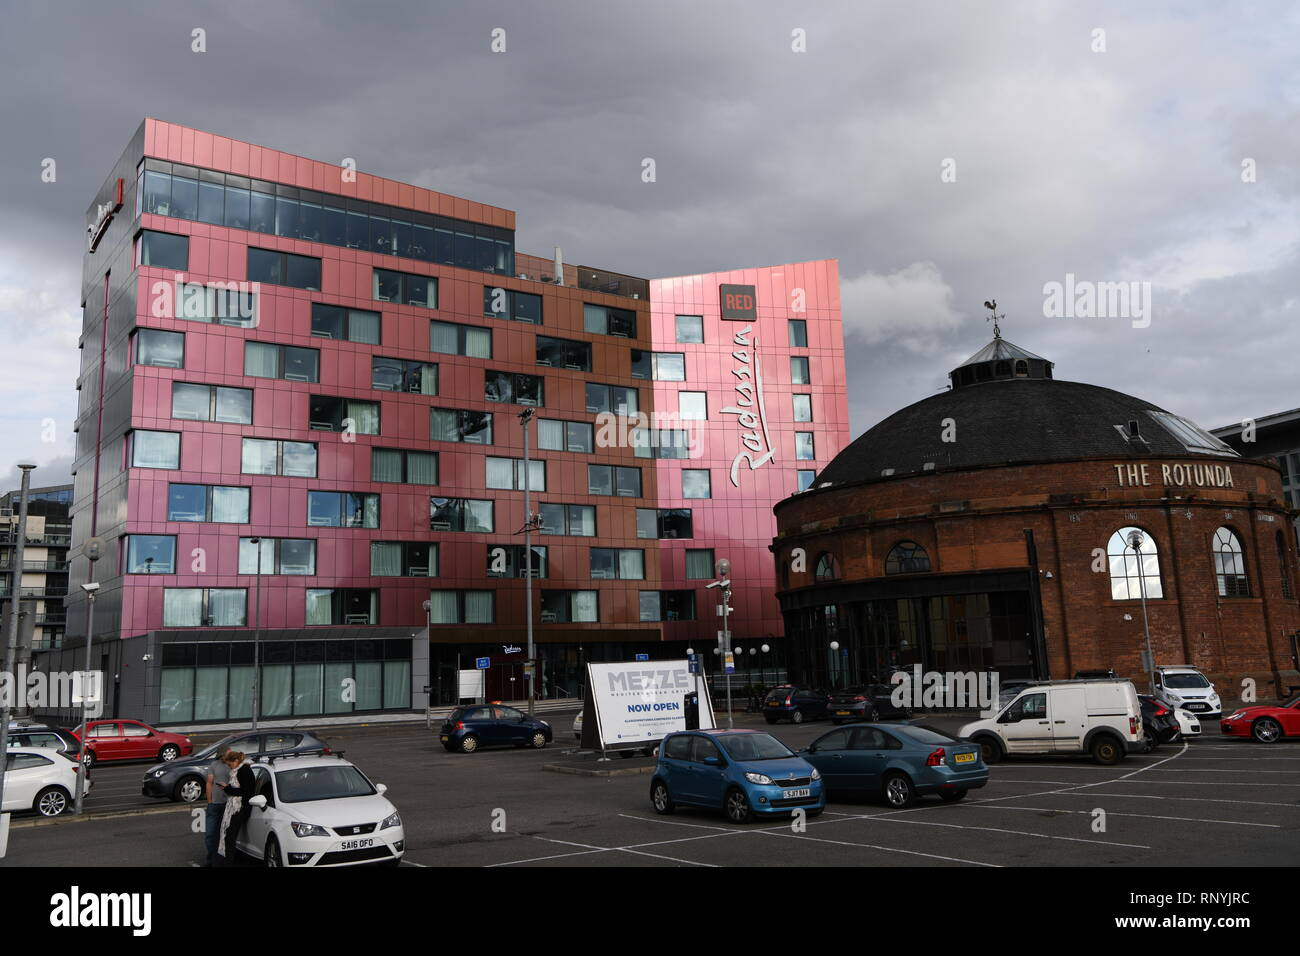 Radisson Red Hotel, Glasgow, Scotland, UK. Situated on the River Clyde next to the SECC. - Stock Image